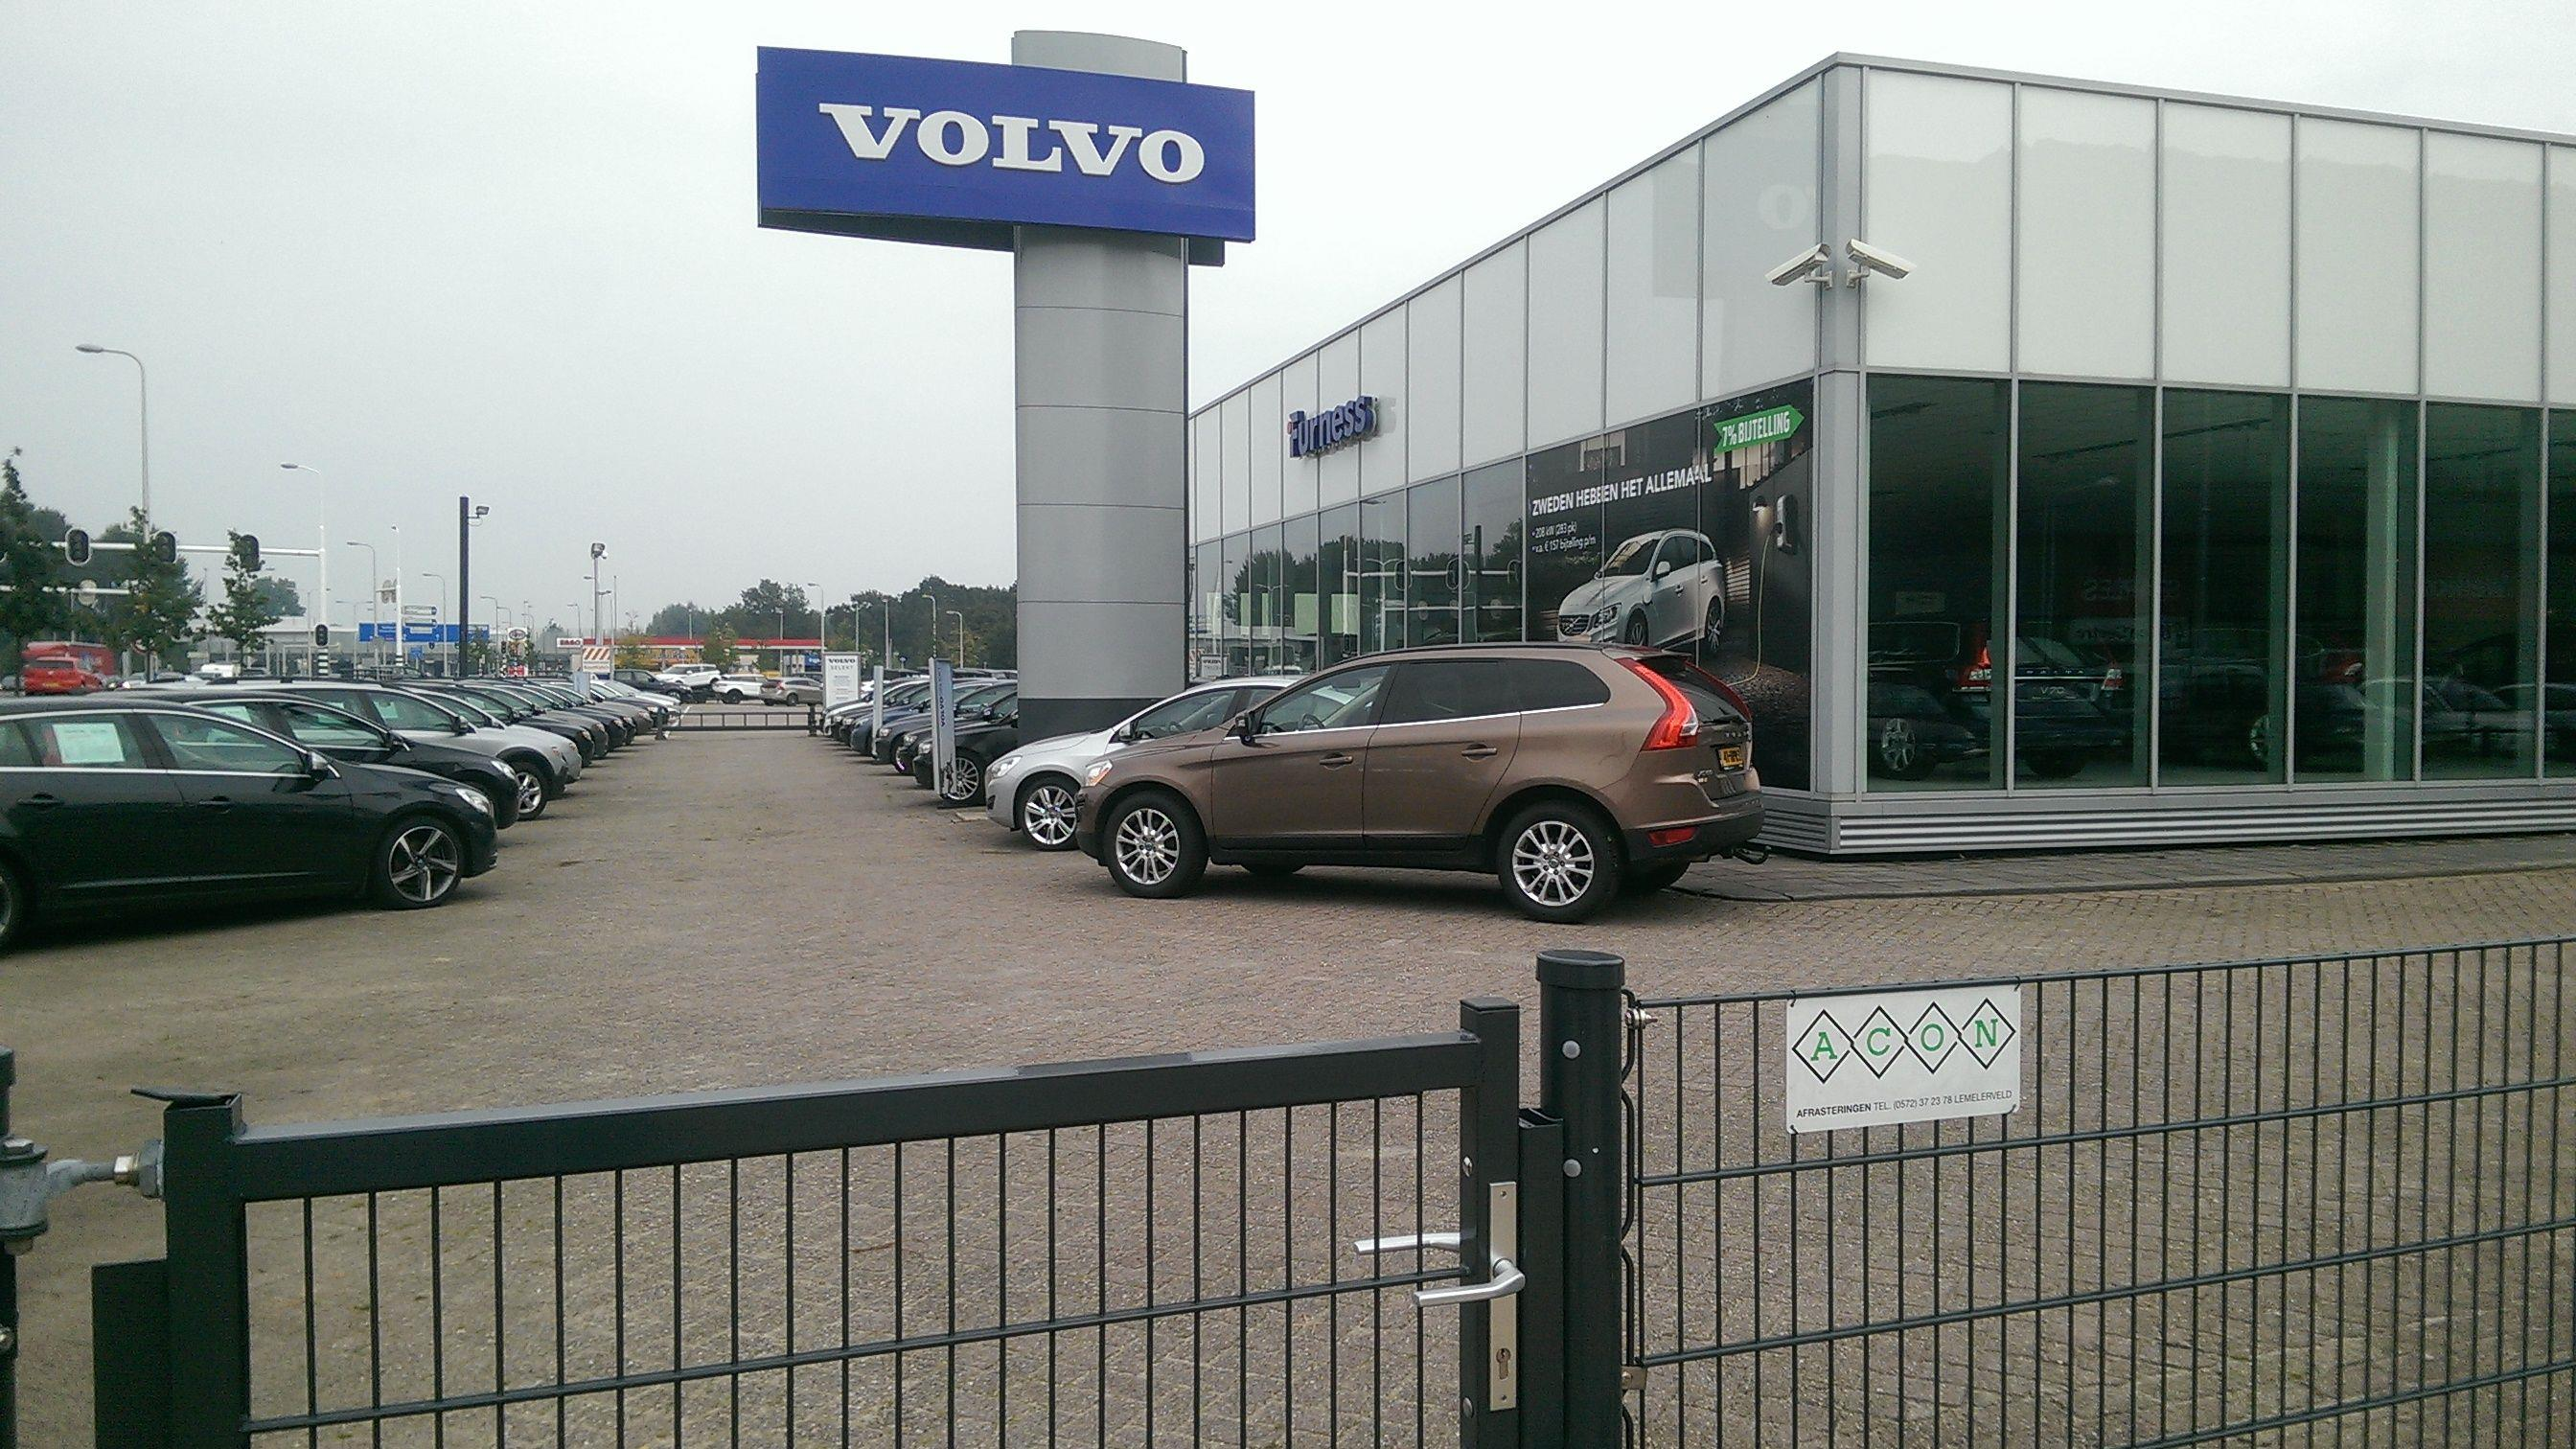 Opening volvo garage in zwolle weer vertraagd curator for Garage volvo rouen